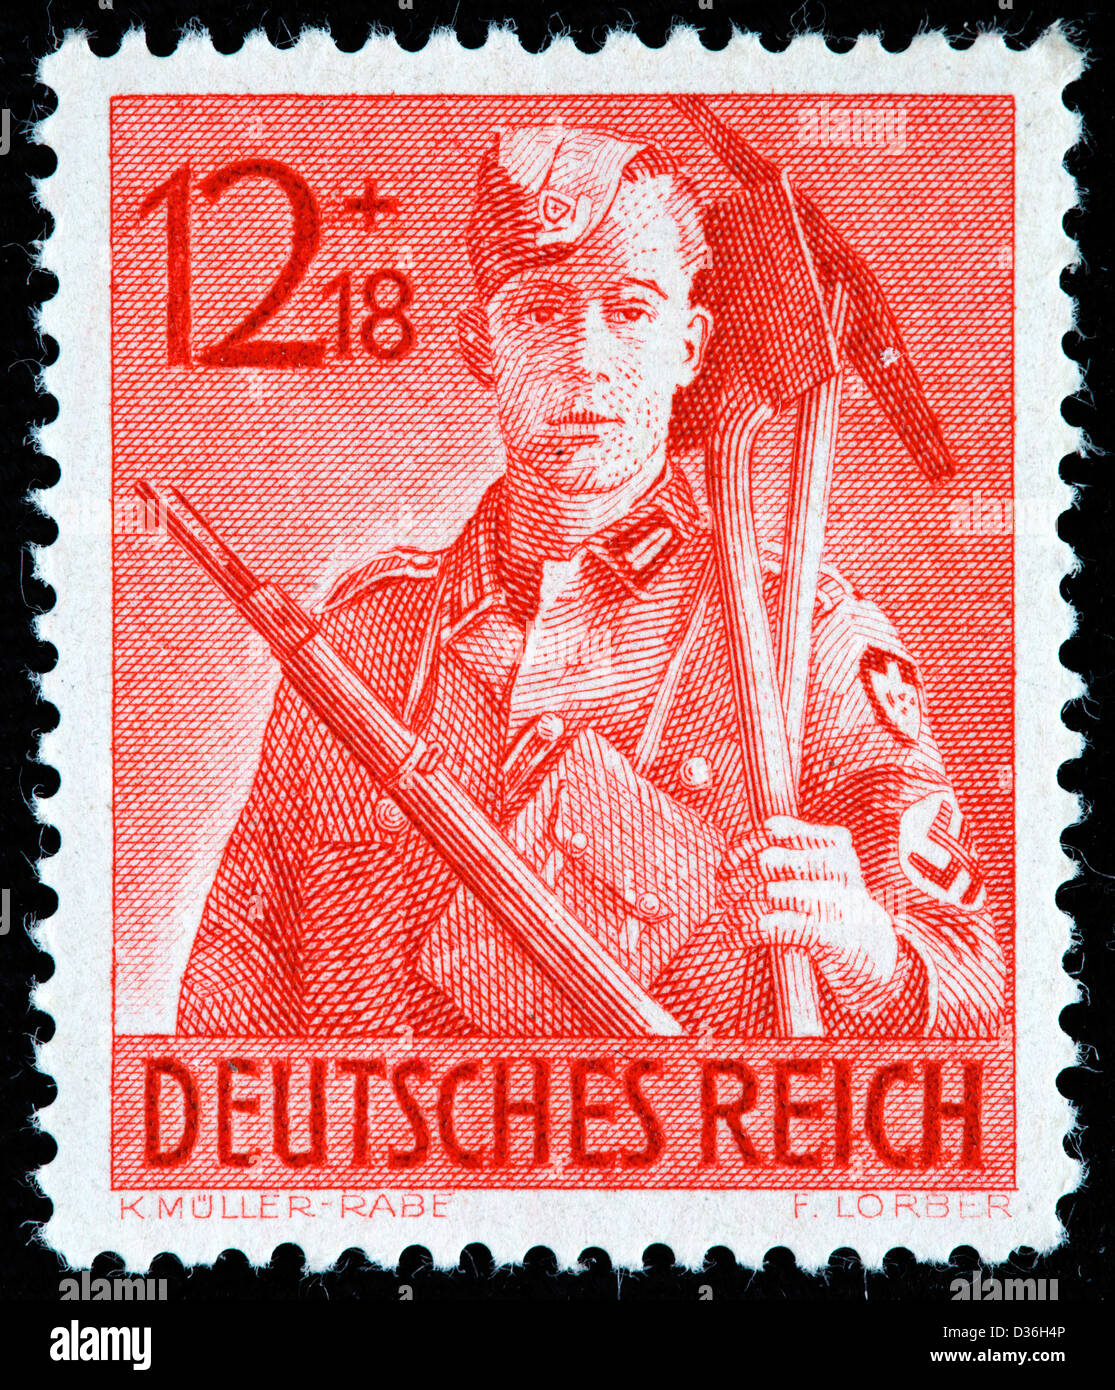 Corpsman with implements, Reich Labor Service Corpsmen, postage stamp, Germany, 1943 - Stock Image